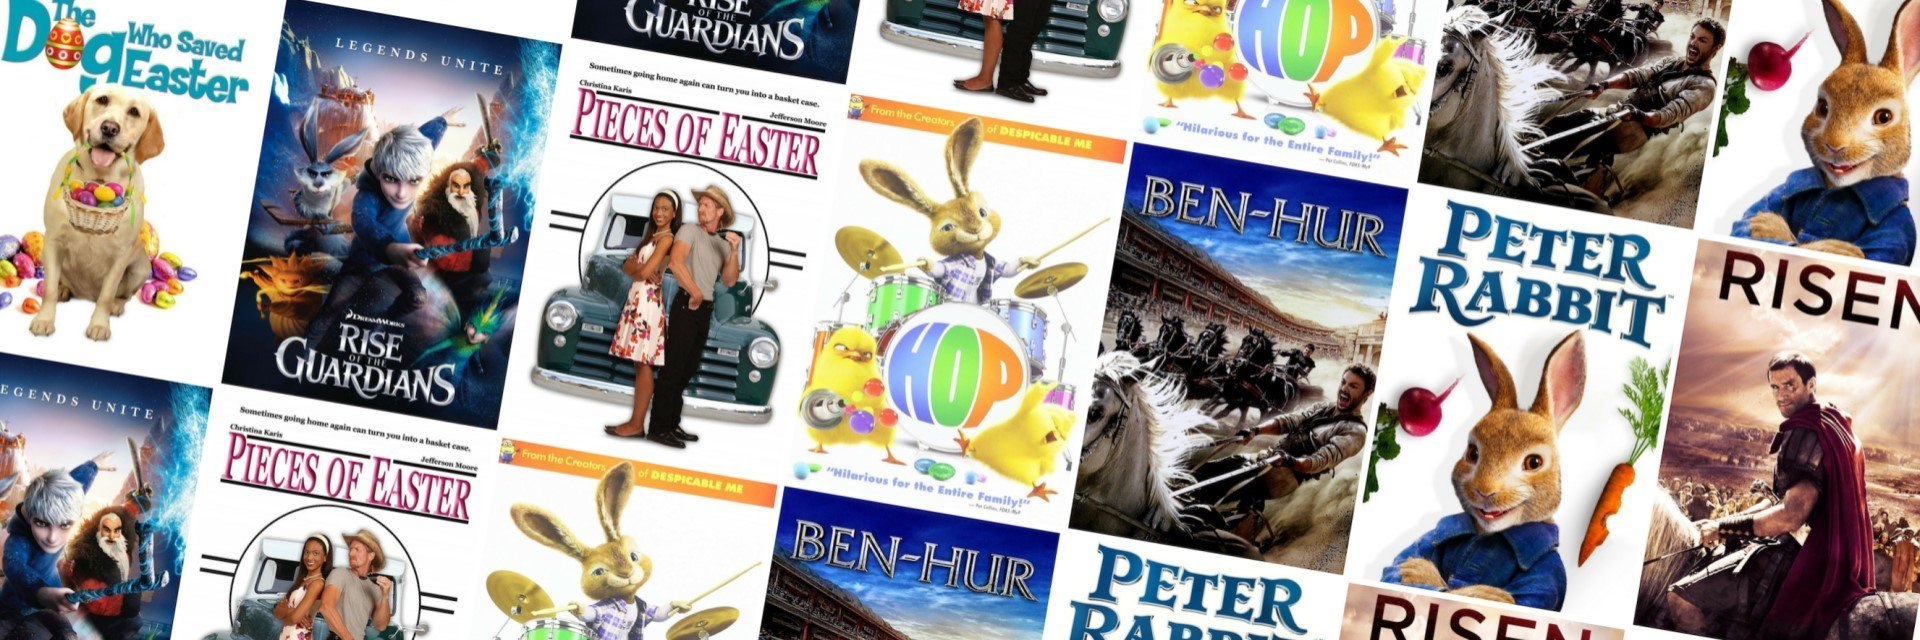 Easter movies to watch with the family